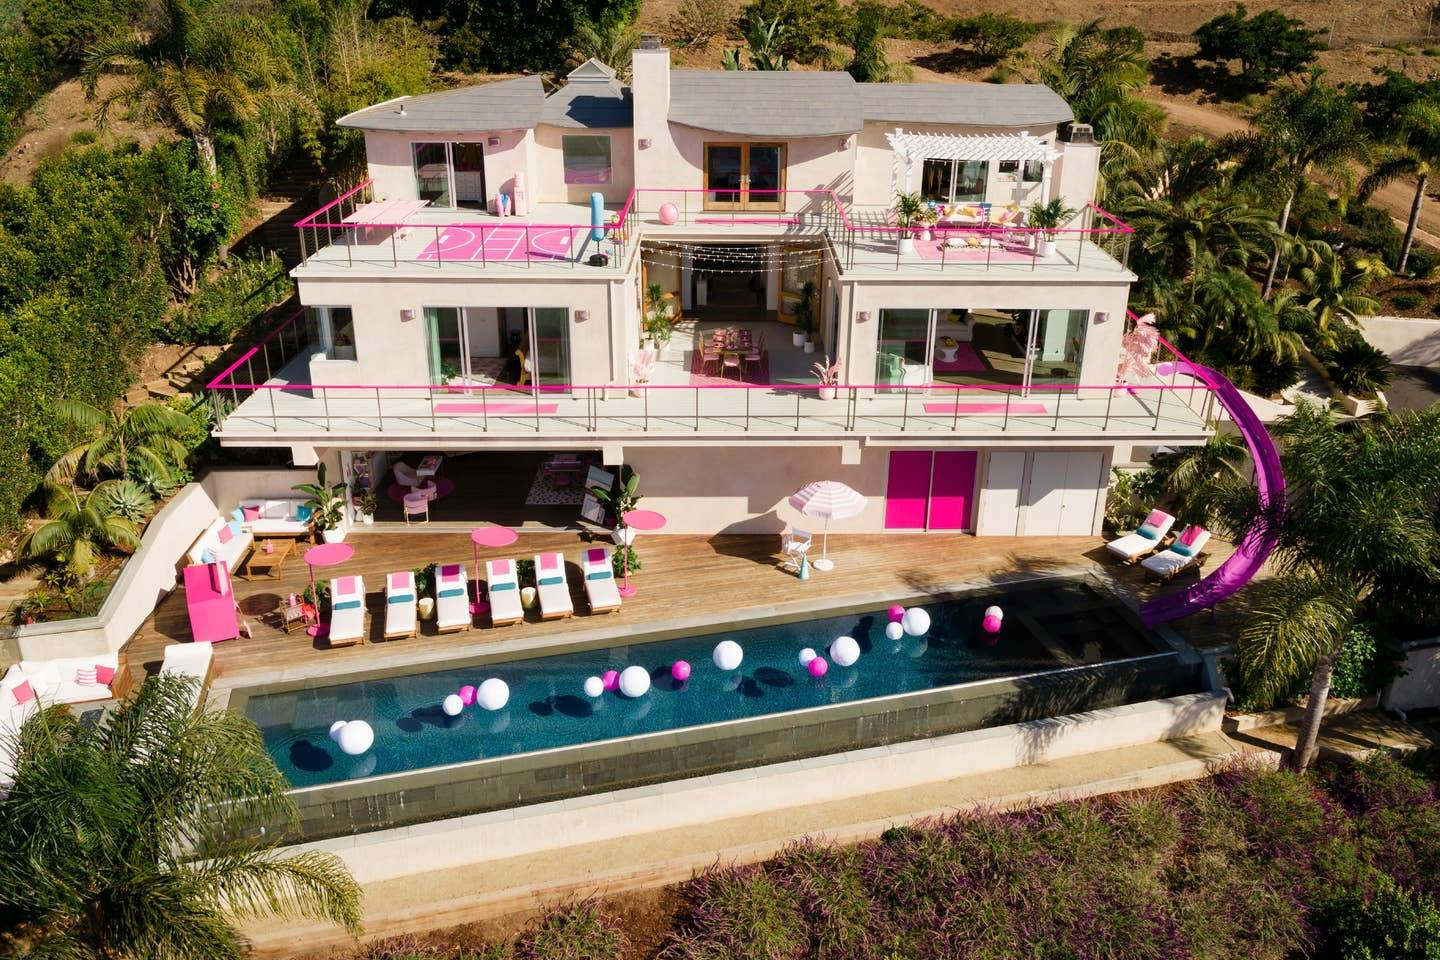 Airbnb and Mattel have brought the Barbie Dreamhouse to life, and it is very pink